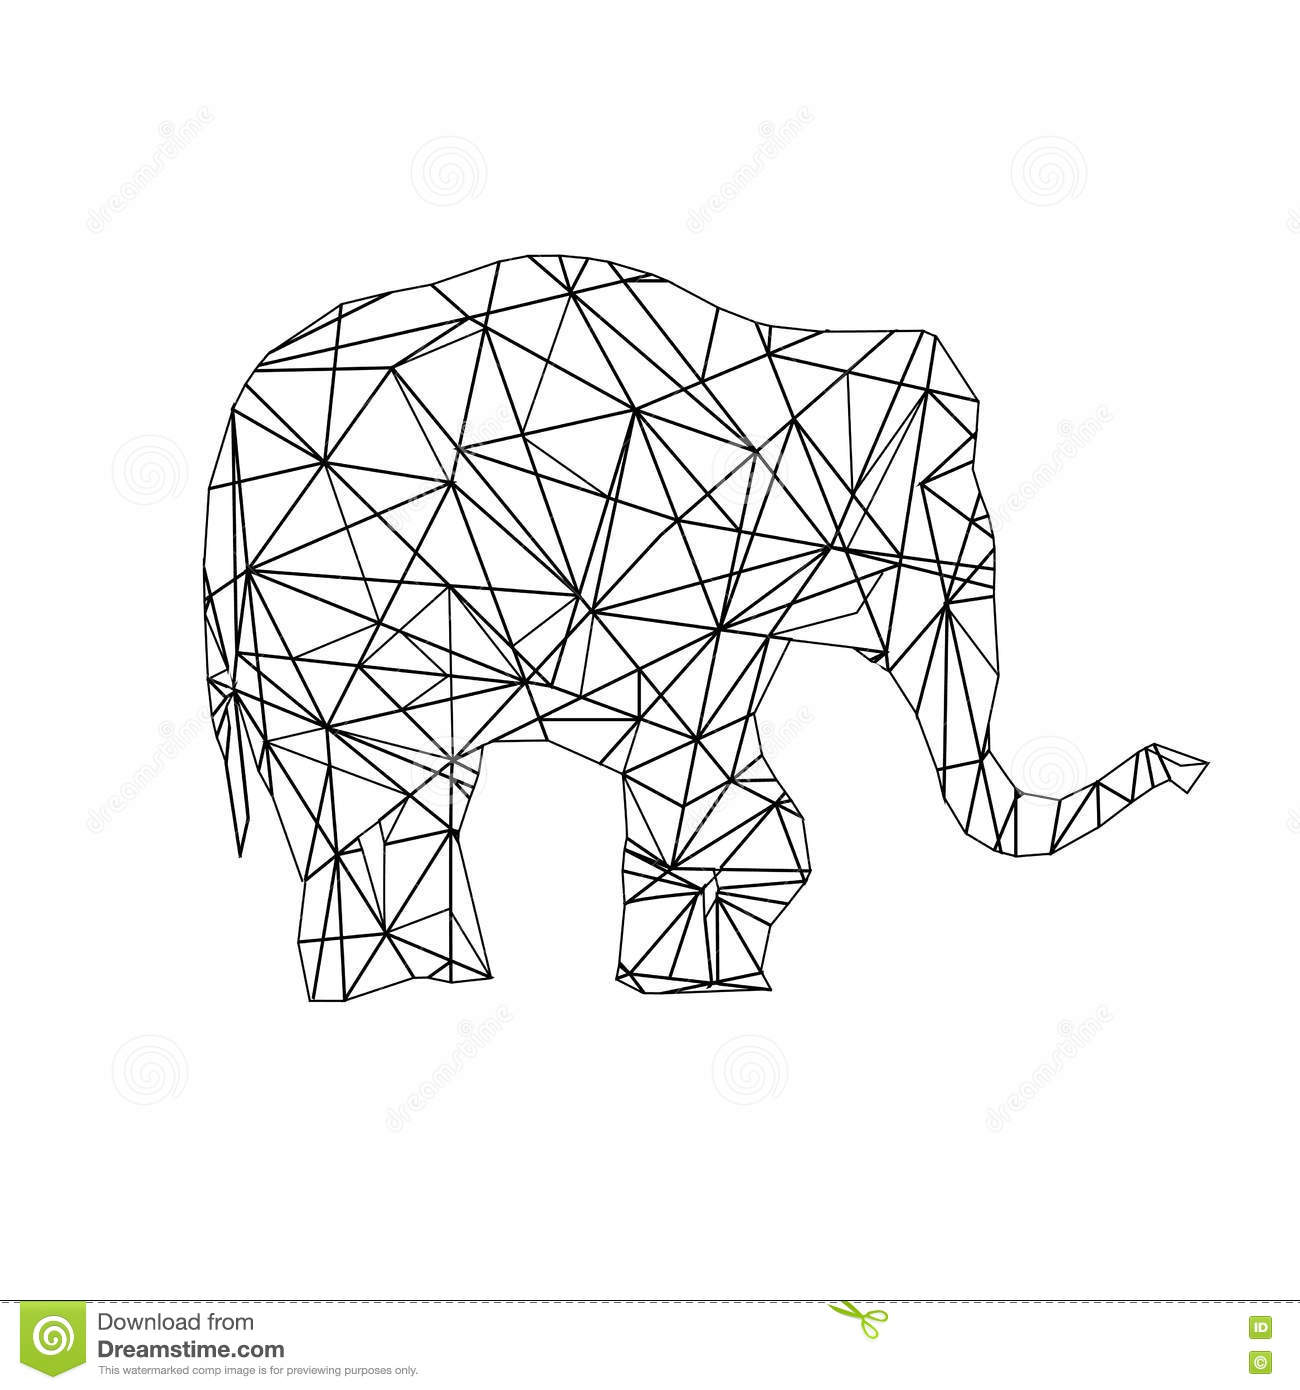 Low Poly Adult Coloring Page Elephant Stock Image - Image of ...